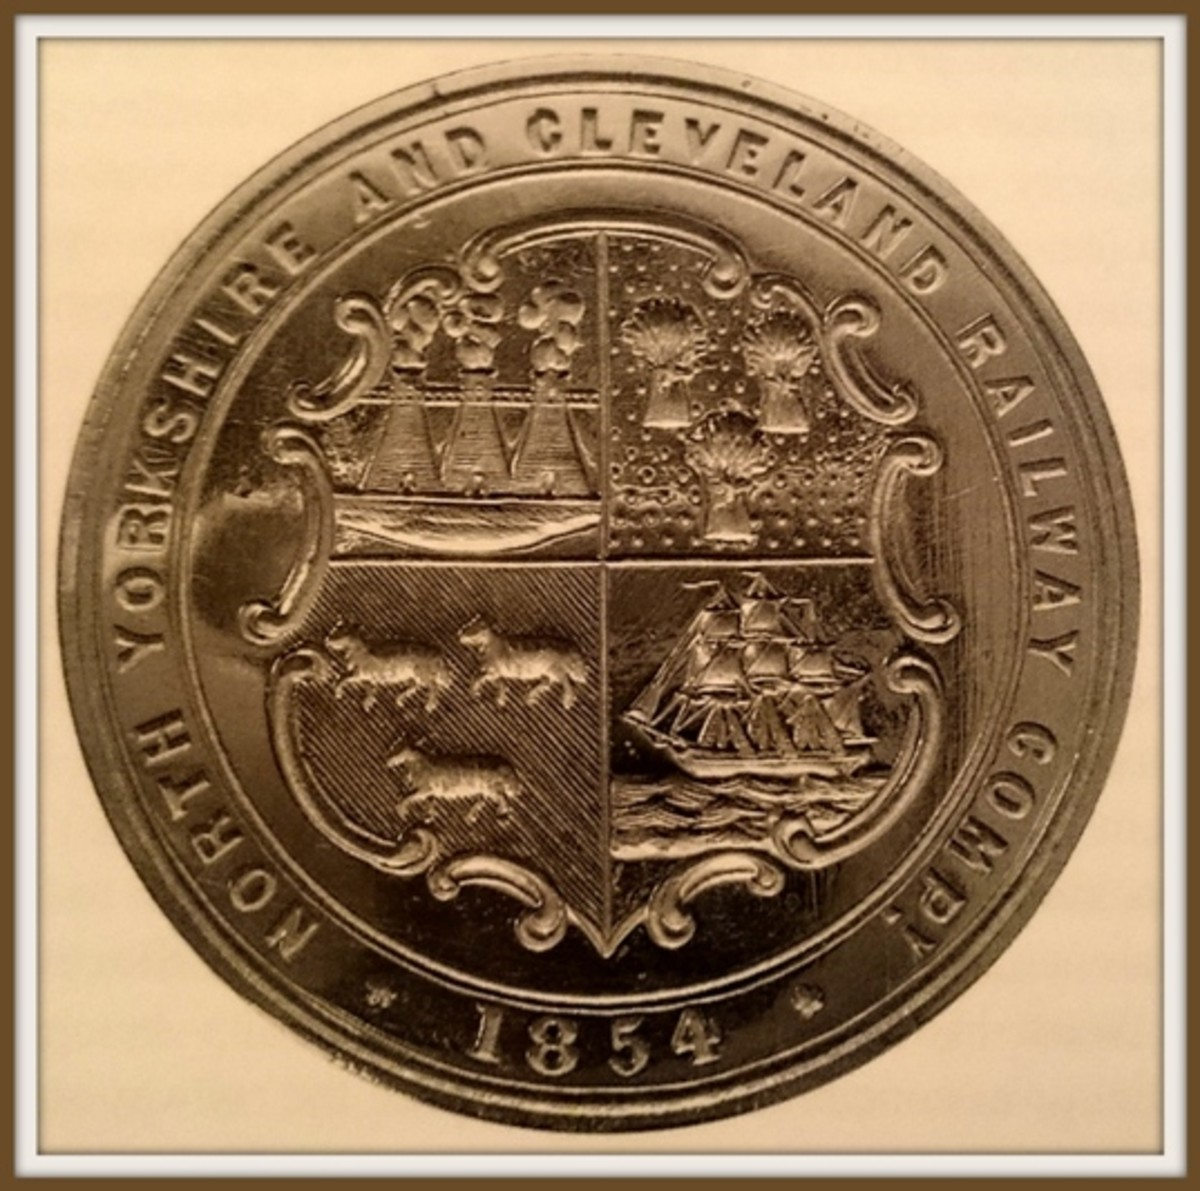 North Yorkshire & Cleveland Railway seal depicts industry, shipping and farming